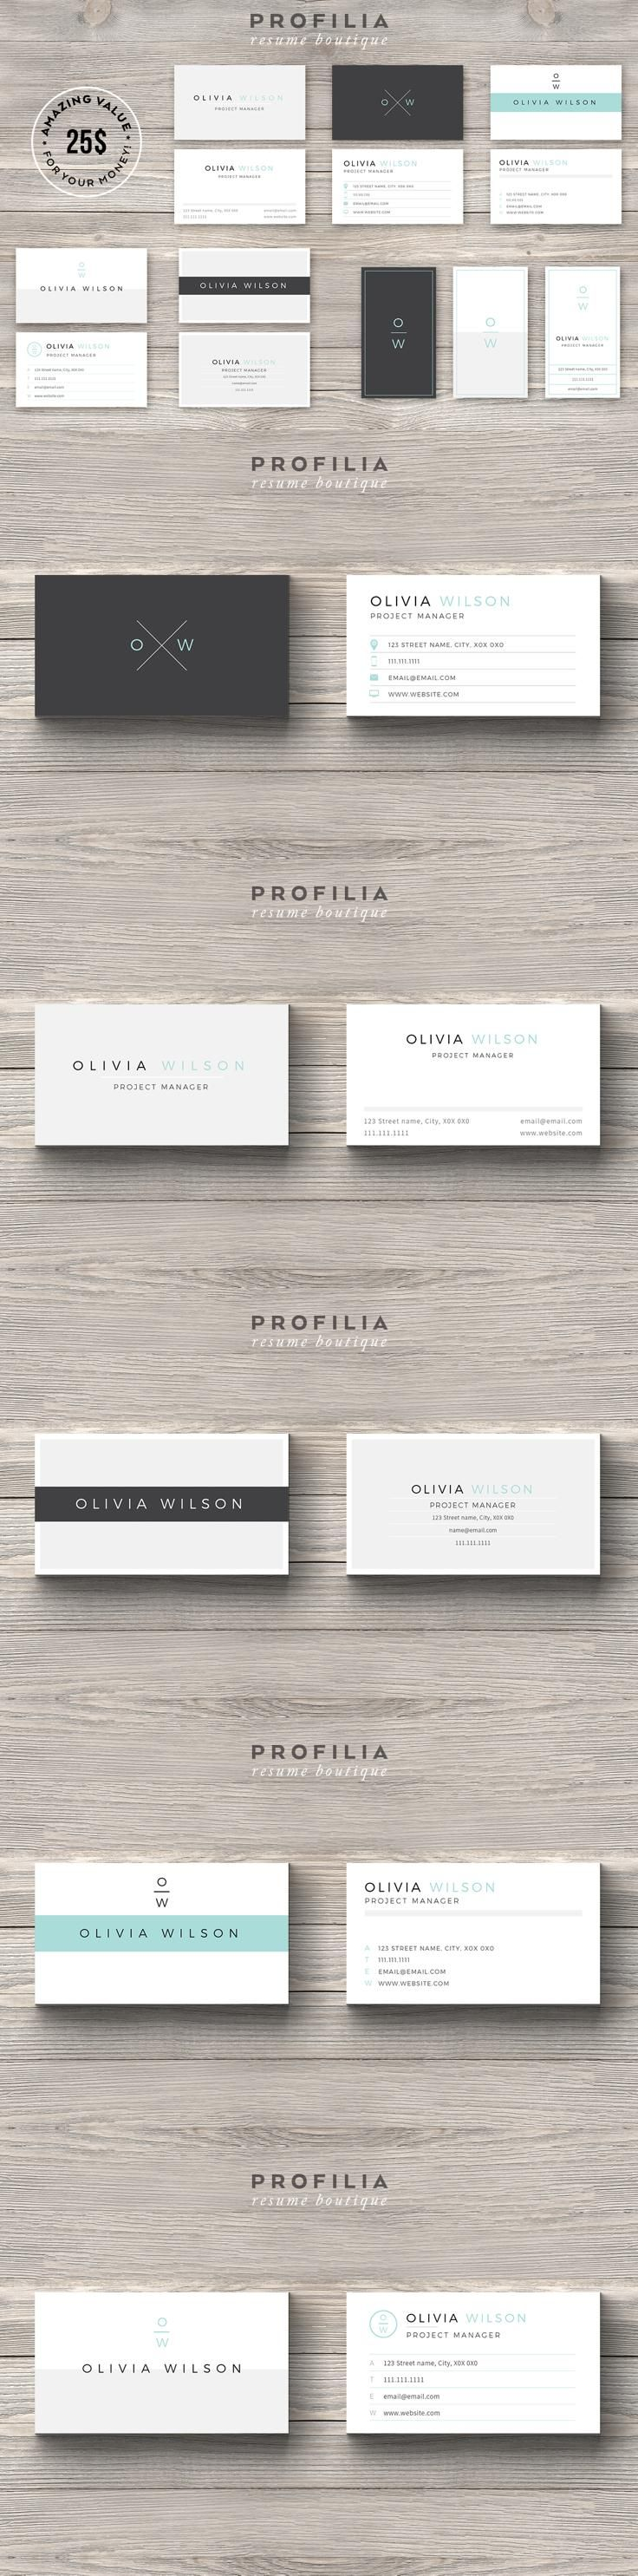 52 best Clean / Elegant Business Cards images on Pinterest | Elegant ...